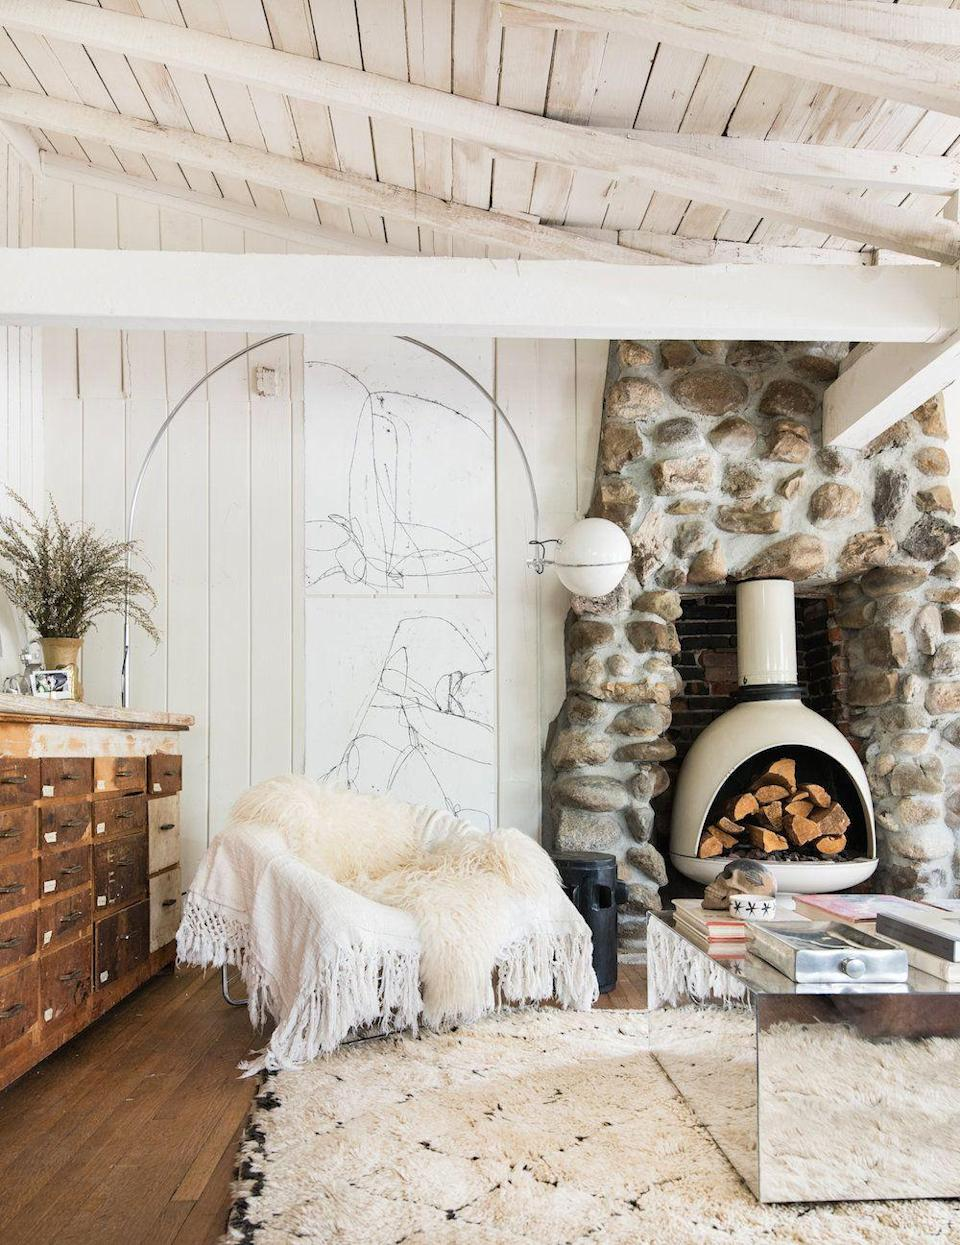 <p>Incorporating mirrored metallics, stone, wood, and plenty of plush throws, this room is covering all the texture bases. We're feeling that stone wall around the wood burning fireplace in particular. The modern updates make it feel on-trend instead of outdated, as does painting everything white. </p>